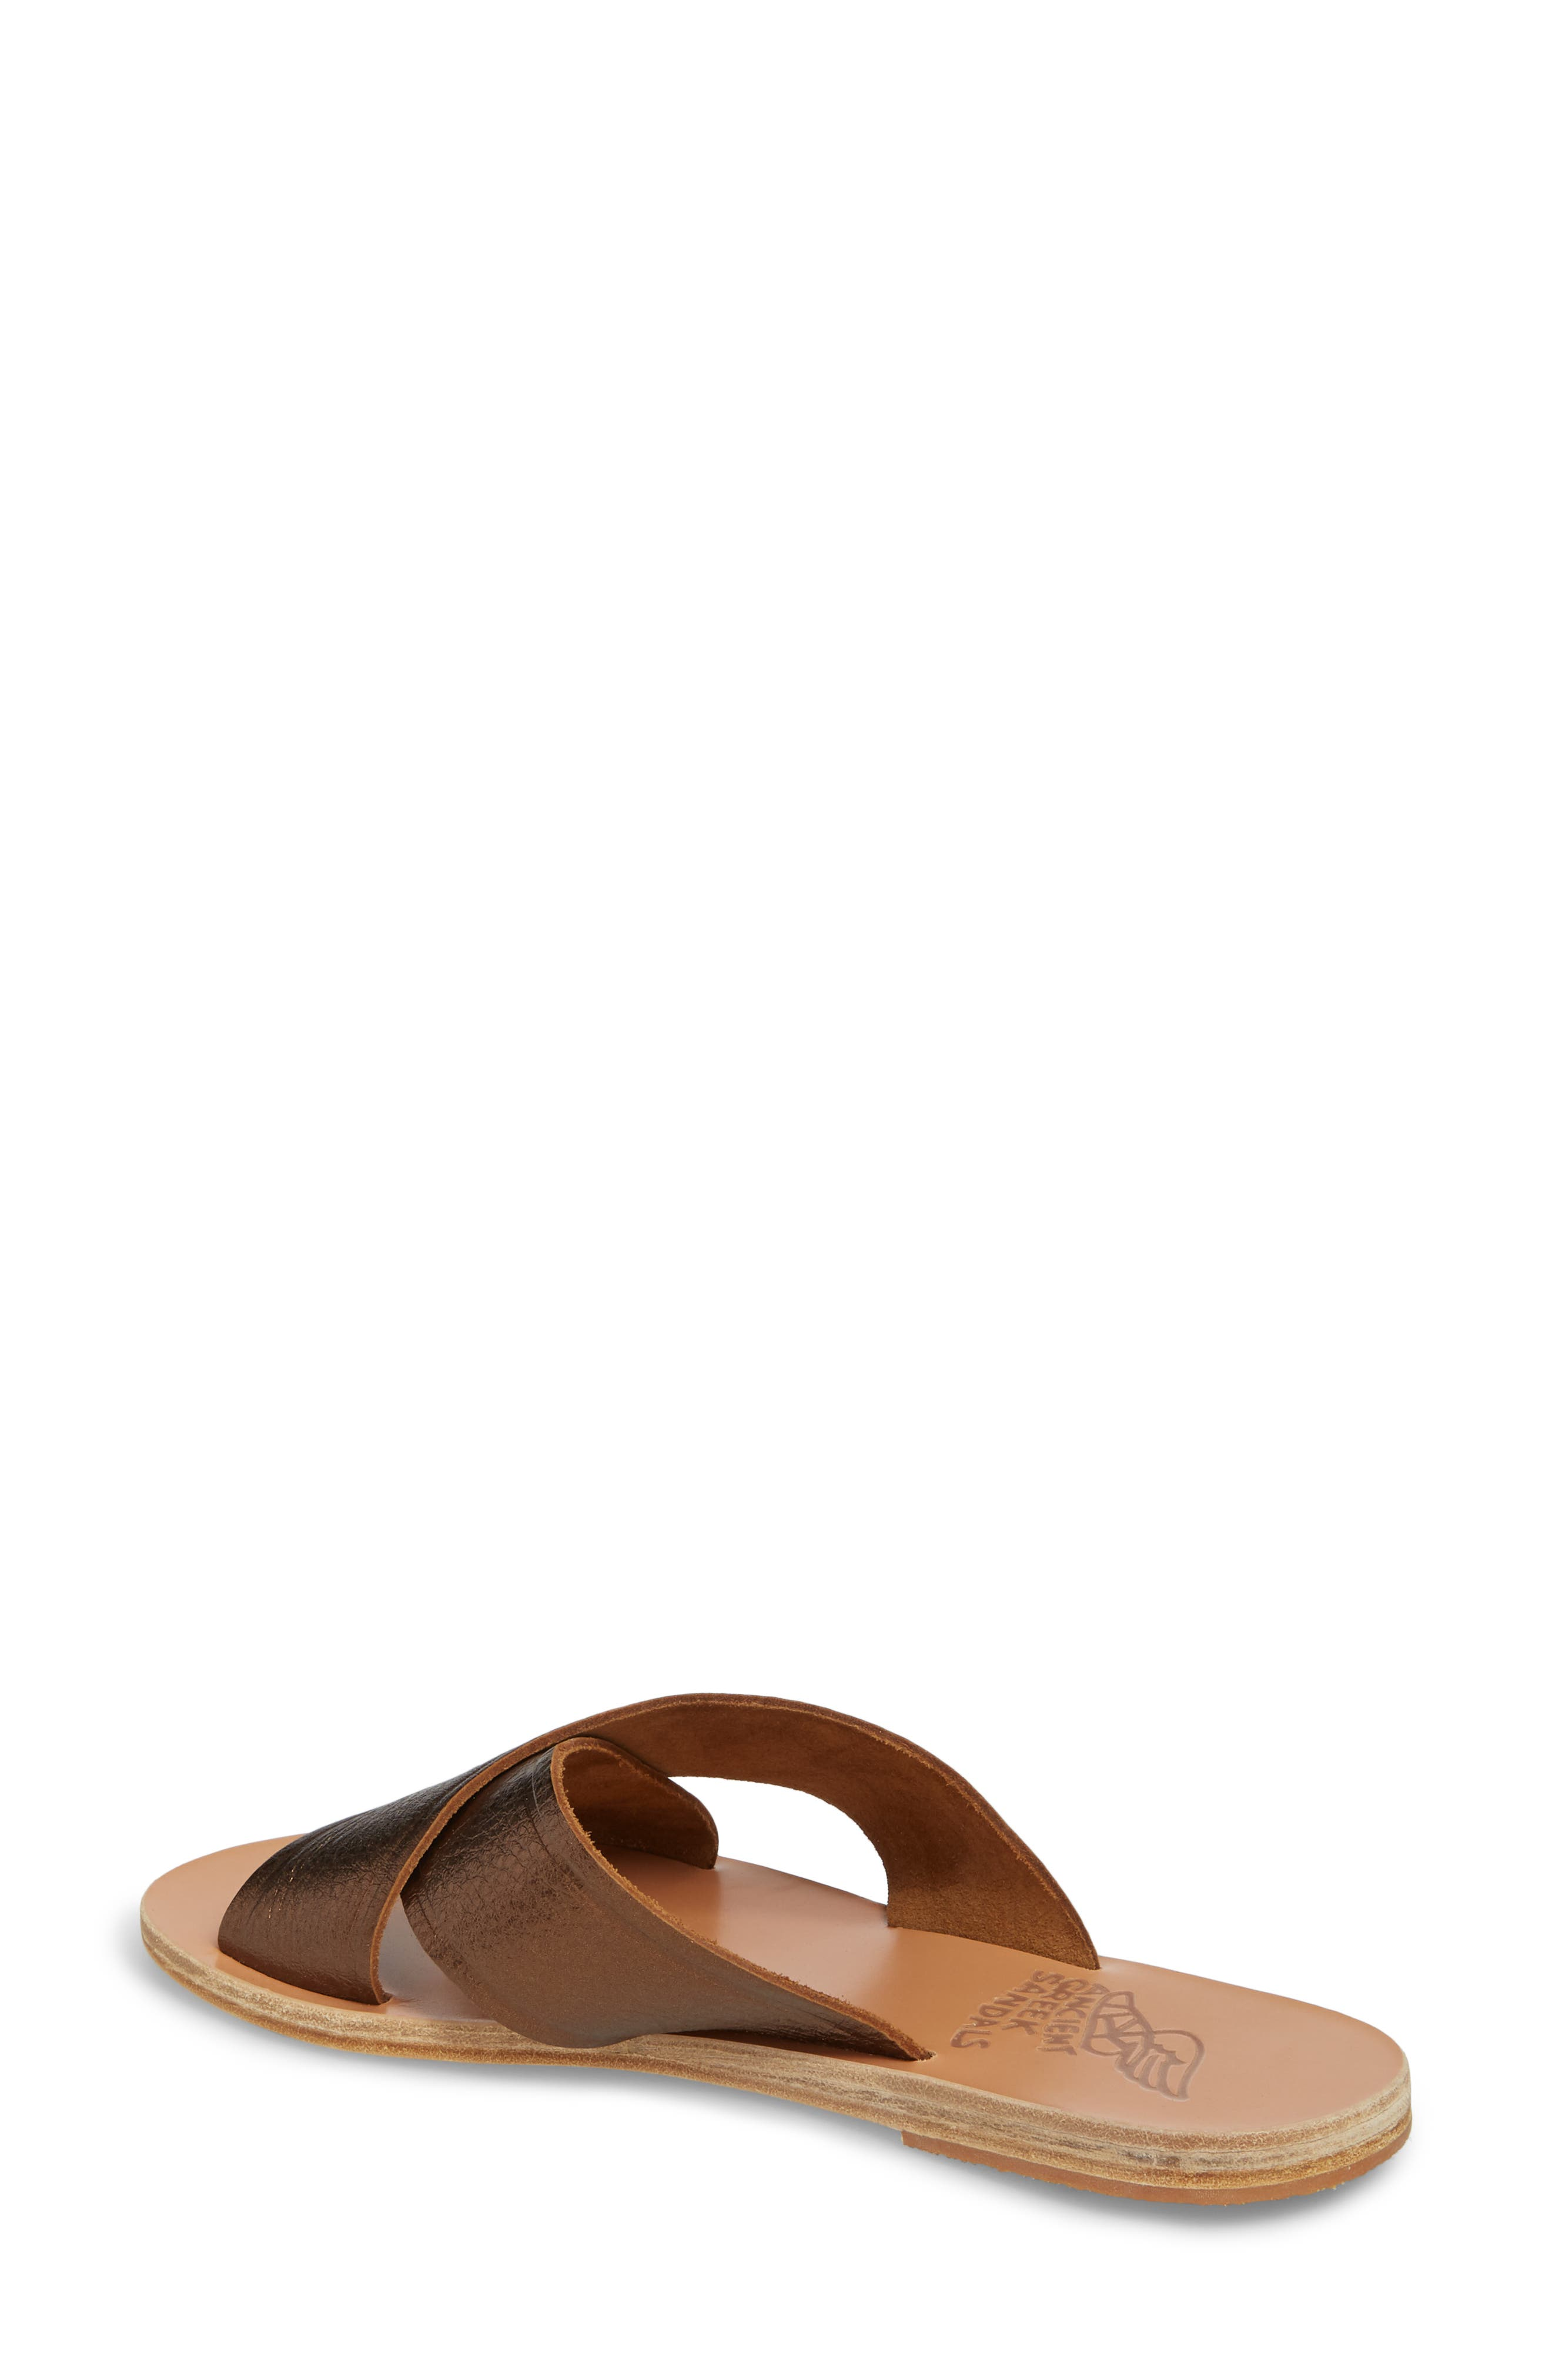 Thais Slide Sandal,                             Alternate thumbnail 2, color,                             Bronze/ Coco